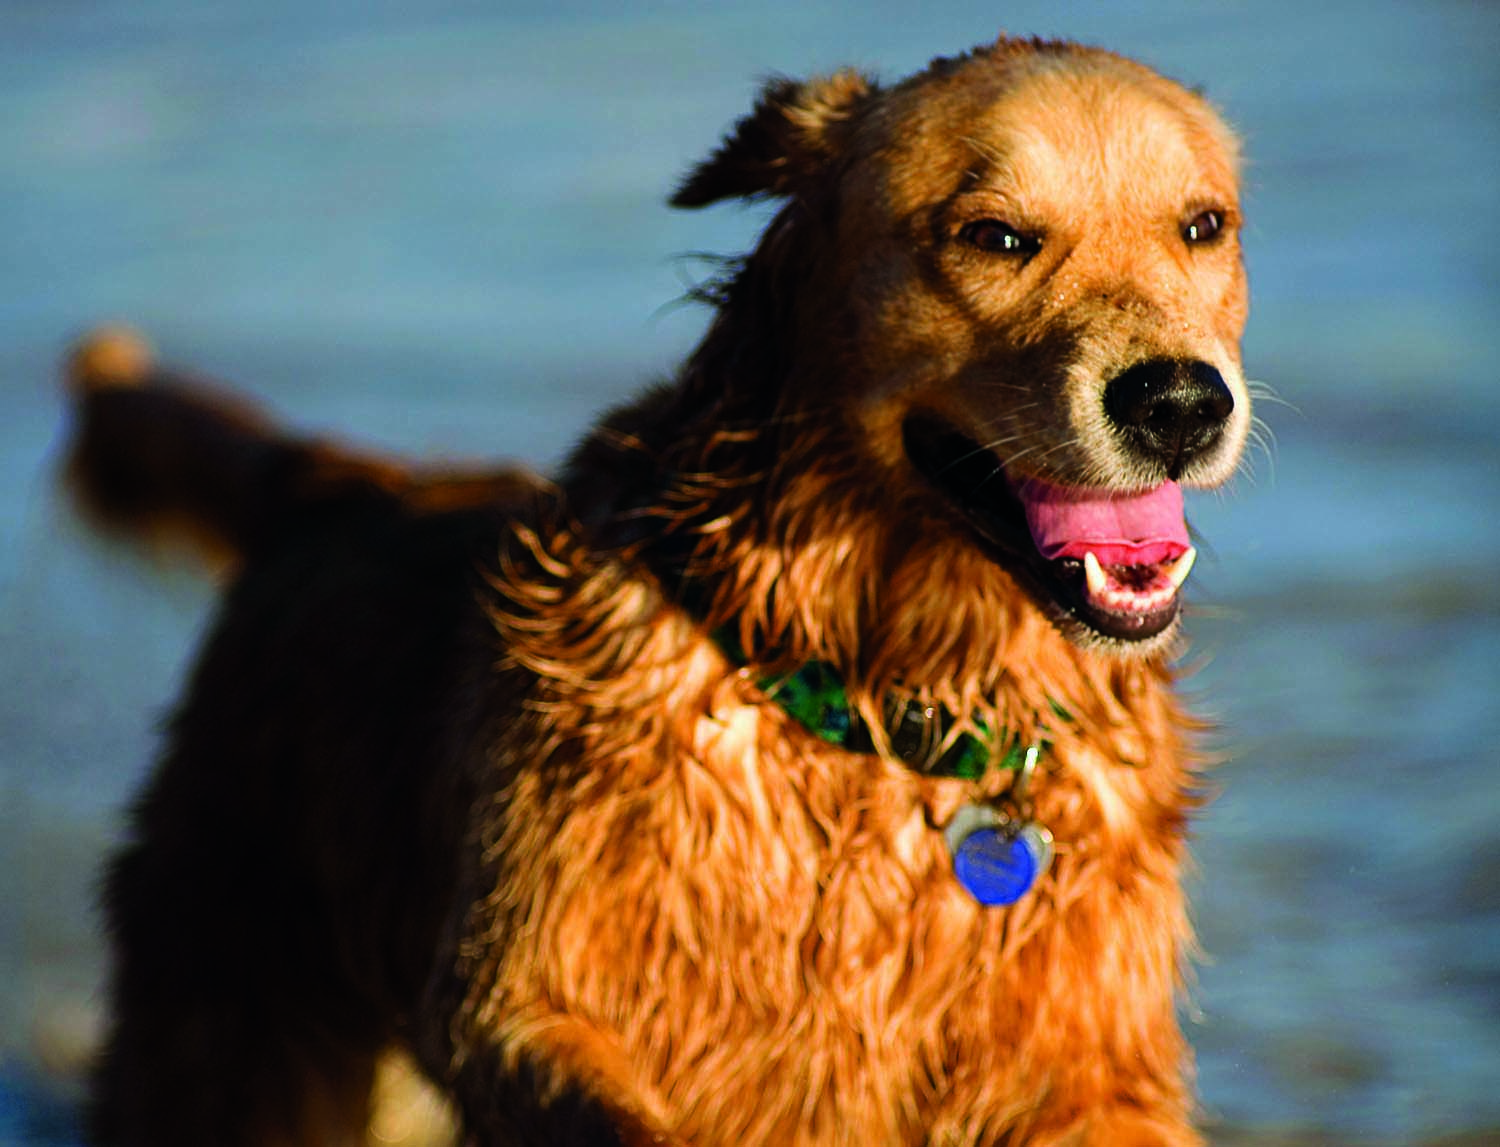 When disasters like last year's Hurricane Dorian strike, human victims are the priority — but animal welfare activists say pets shouldn't be forgotten. Photo by Design Pics Inc/Alamy Stock Photo